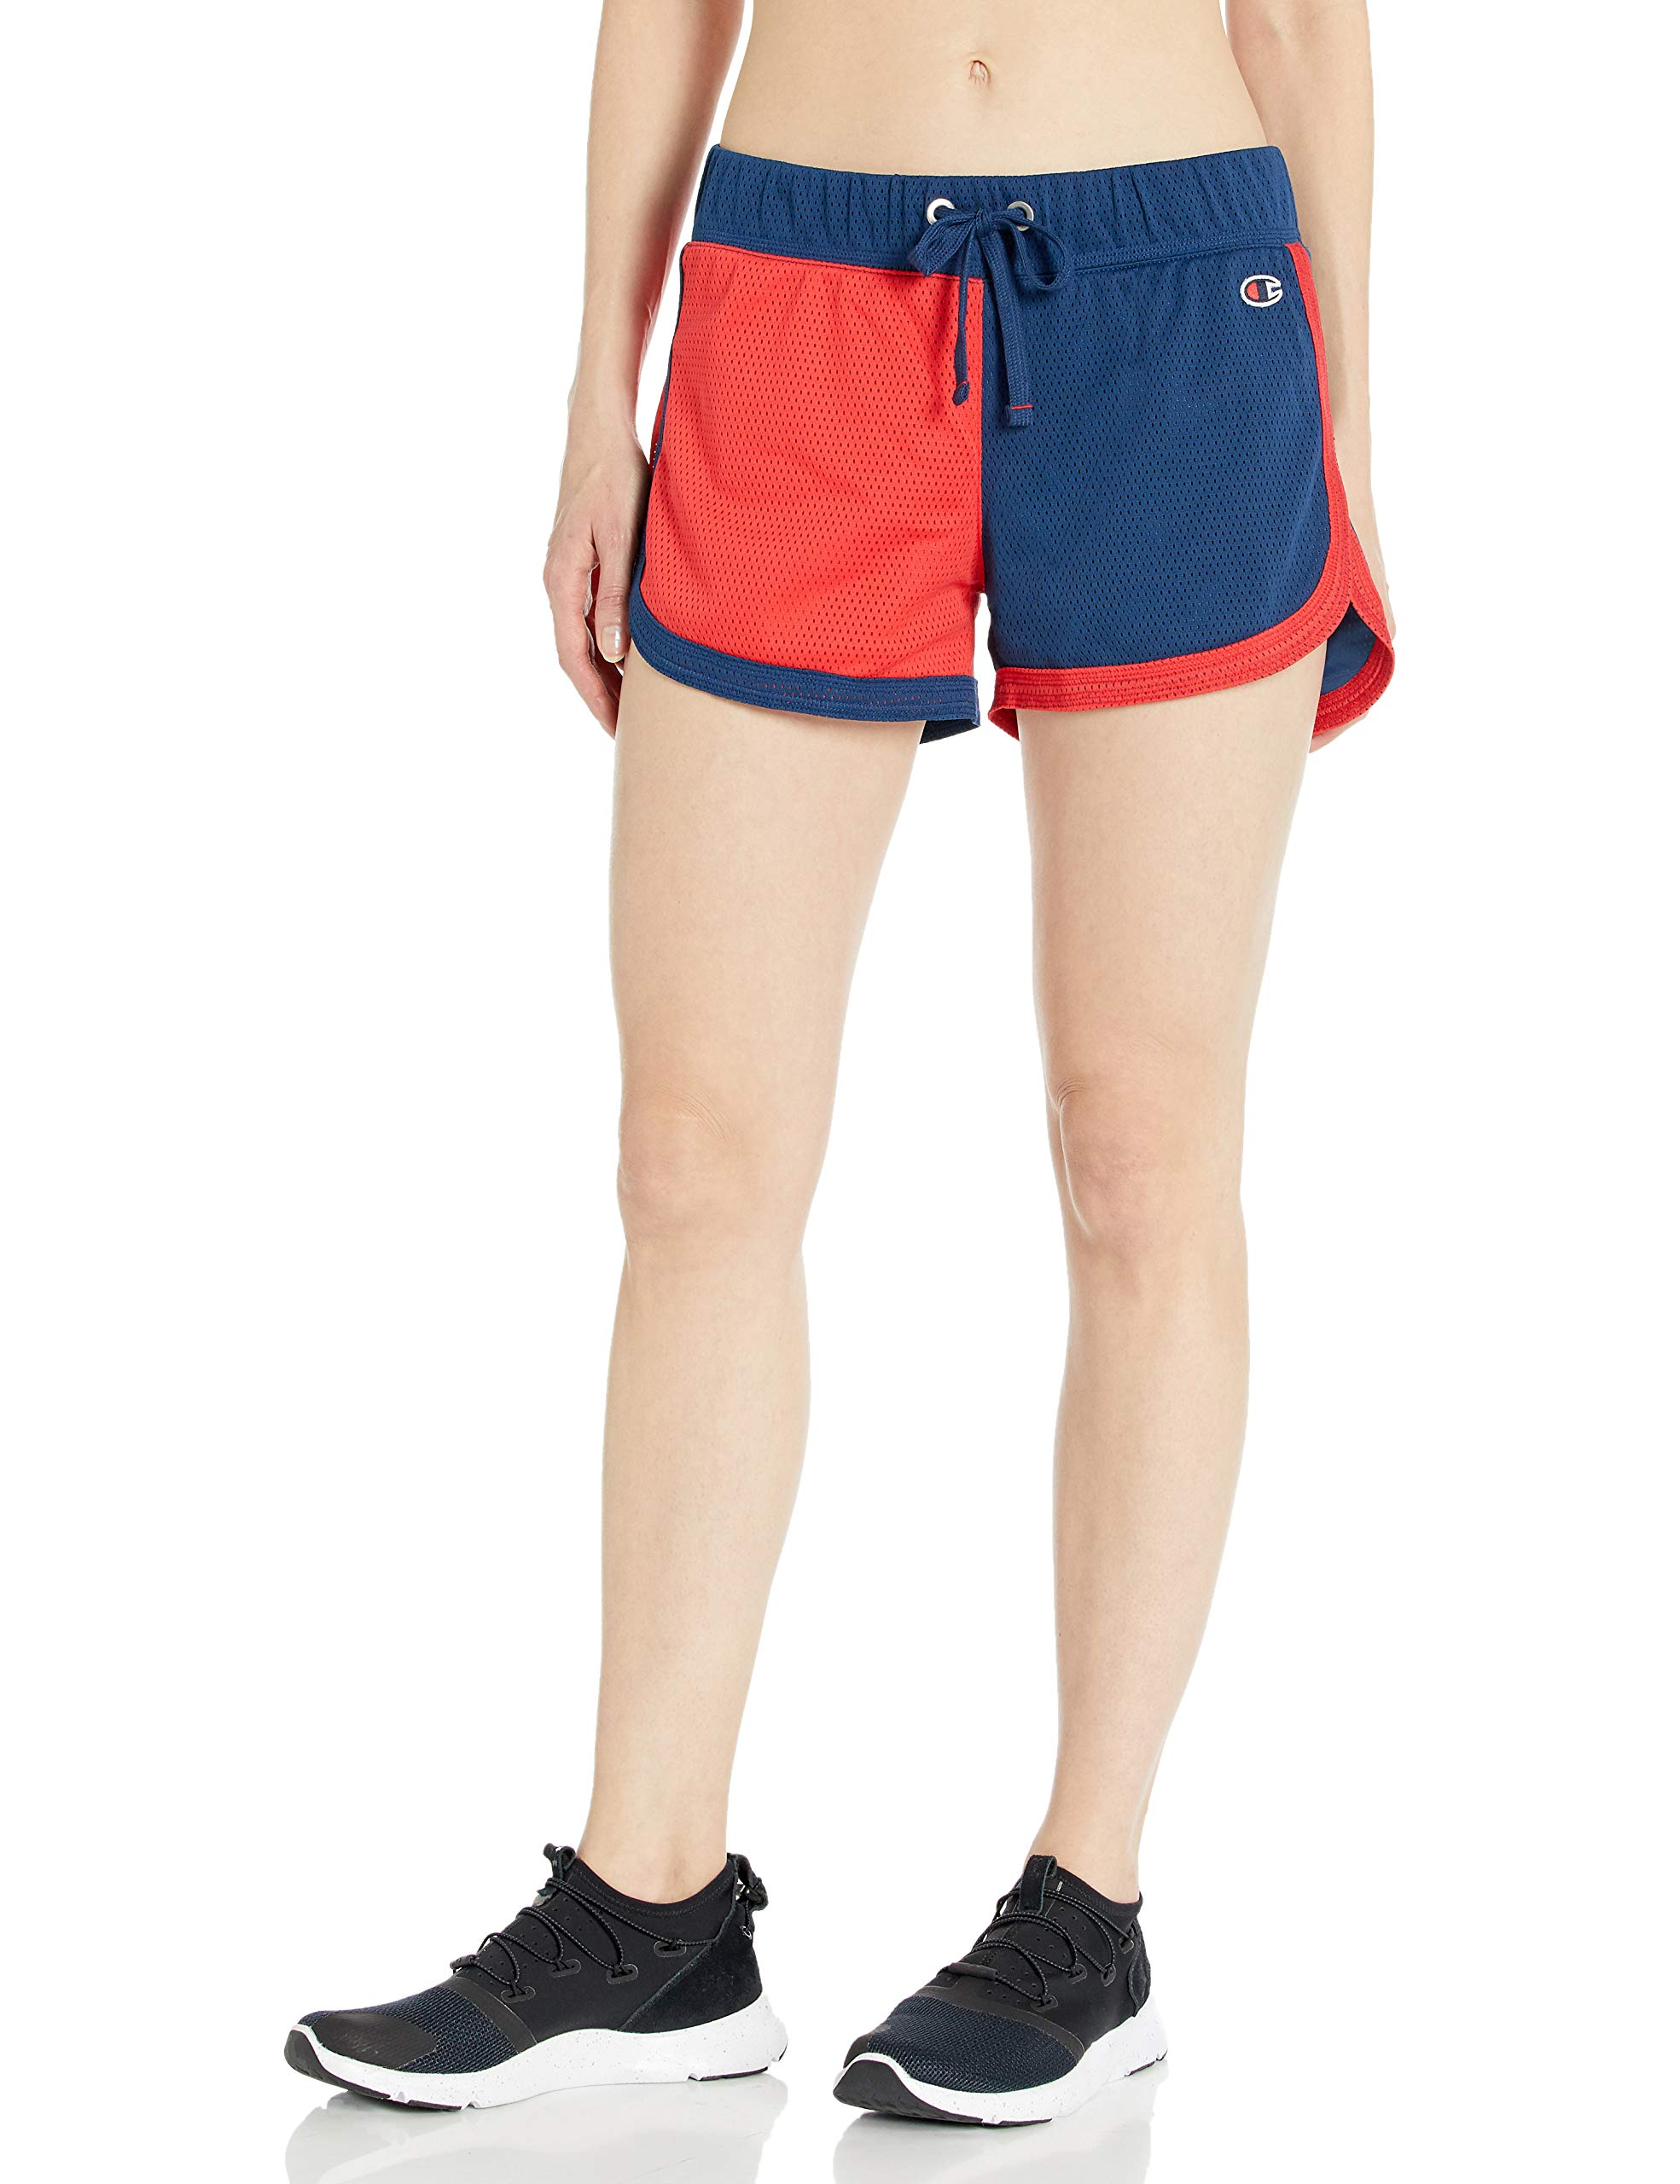 Champion LIFE Women's European Collection Mesh Short (Limited Edition)